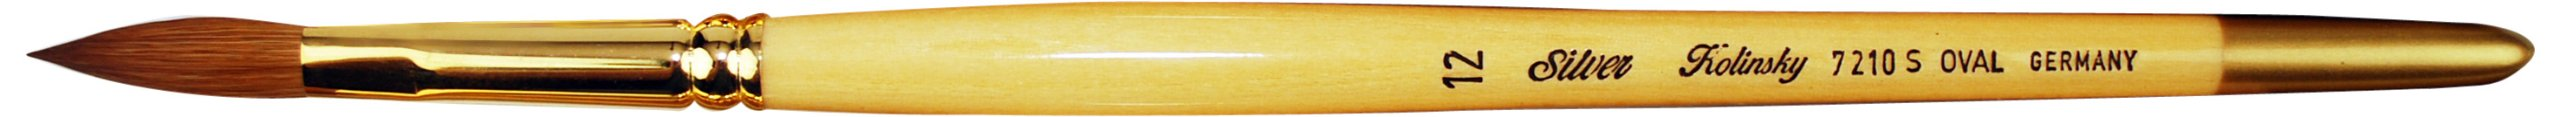 Silver Brush 7210S-12 Silver Kolinsky Sable Short Handle Excellent Quality Brush, Oval, Size 12